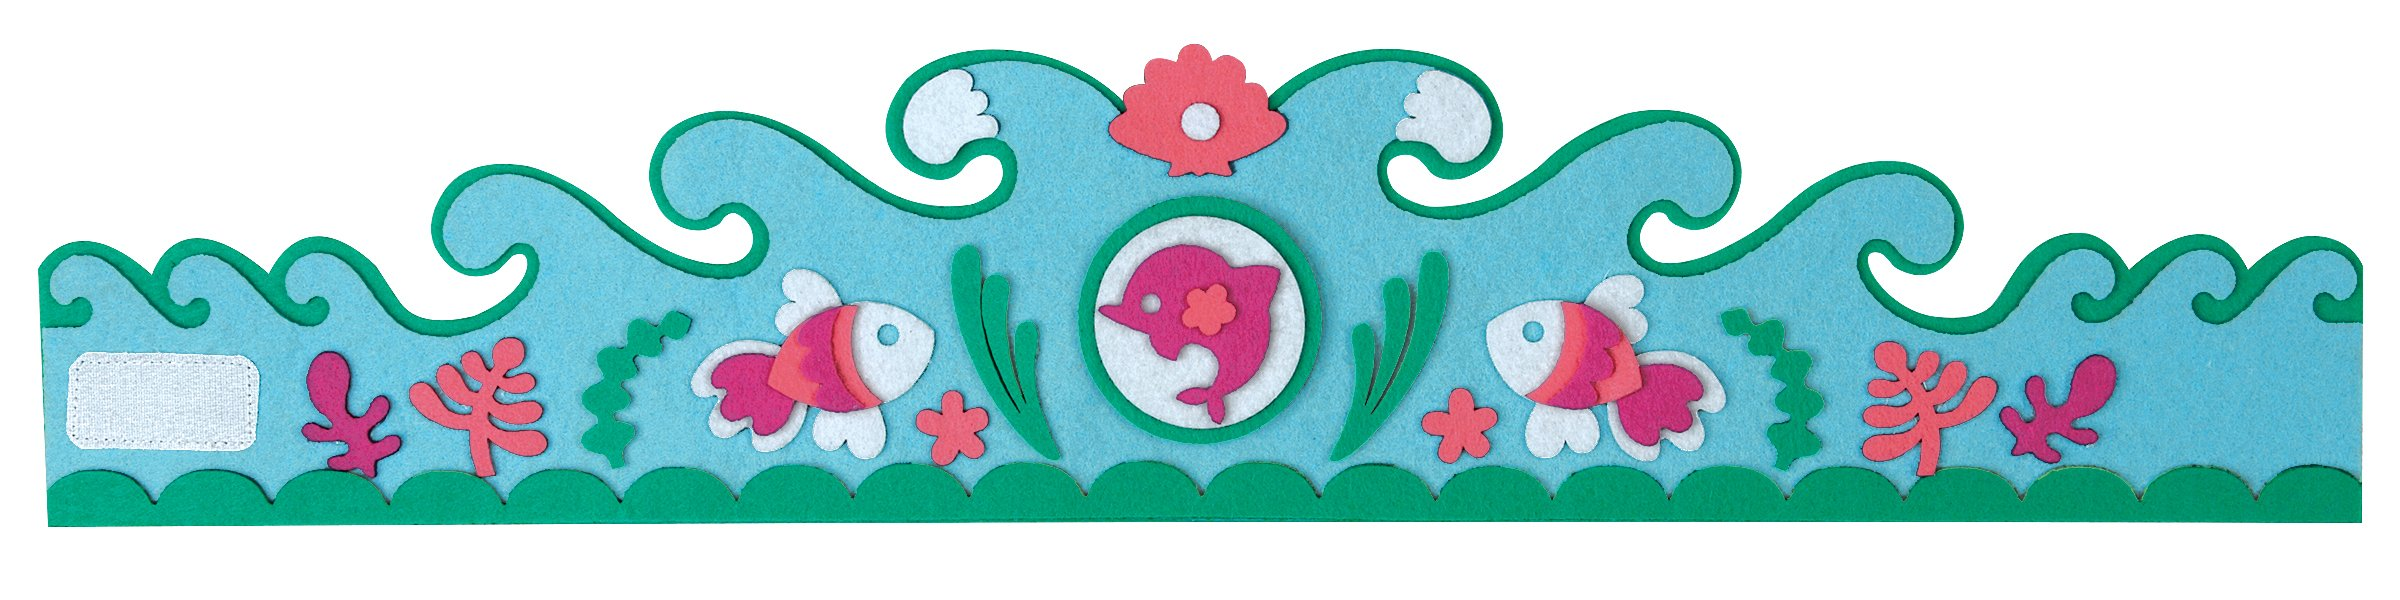 Mudpuppy Magical Mermaid Felt Crown Set